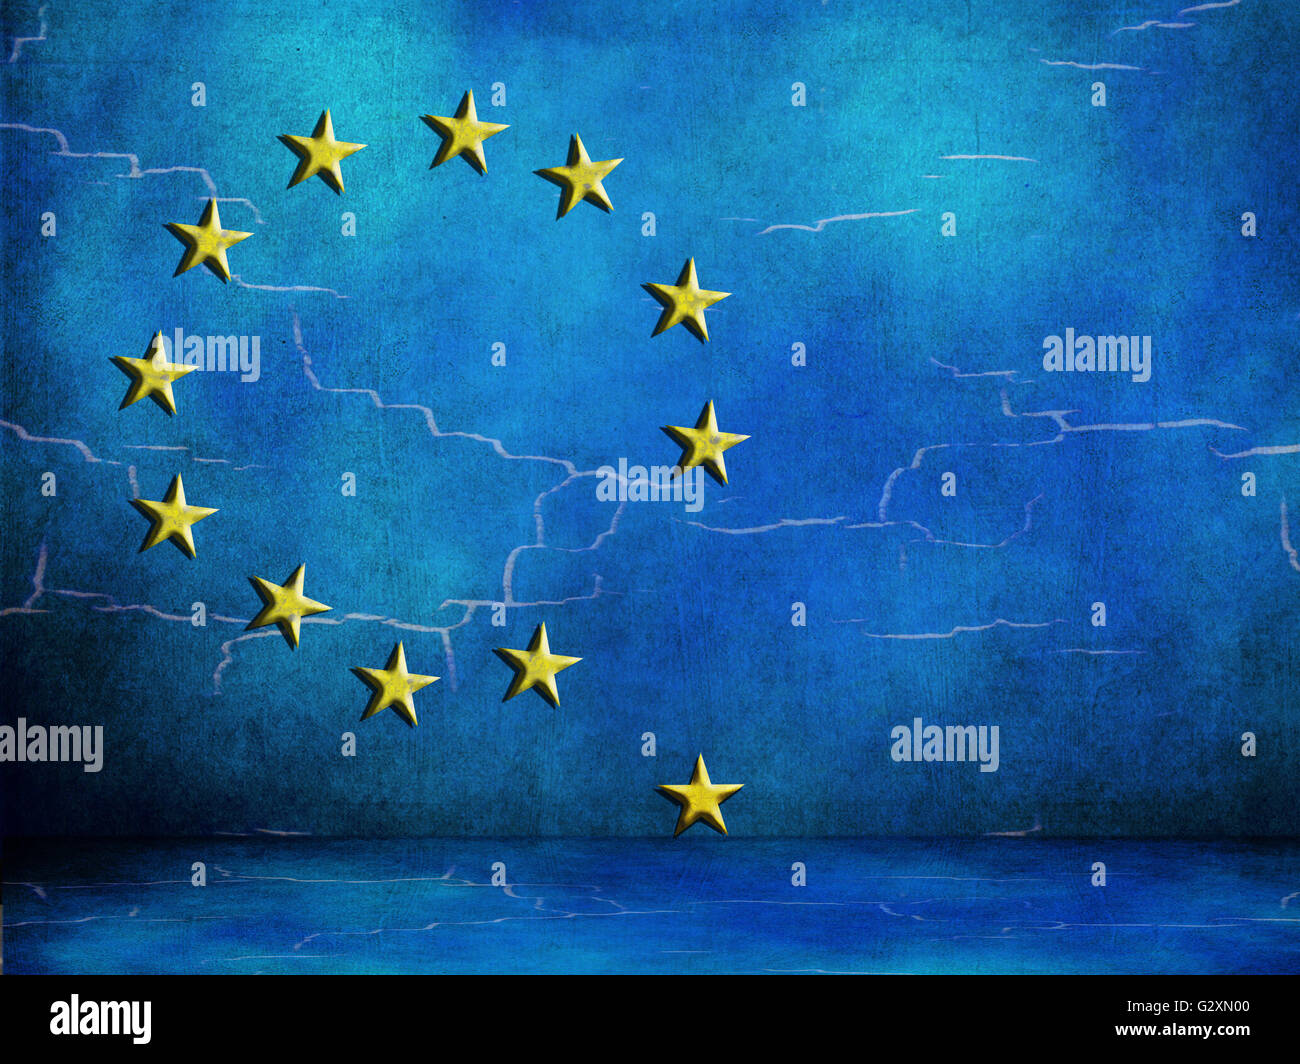 EU European Union looking flaky. In difficulty. - Stock Image